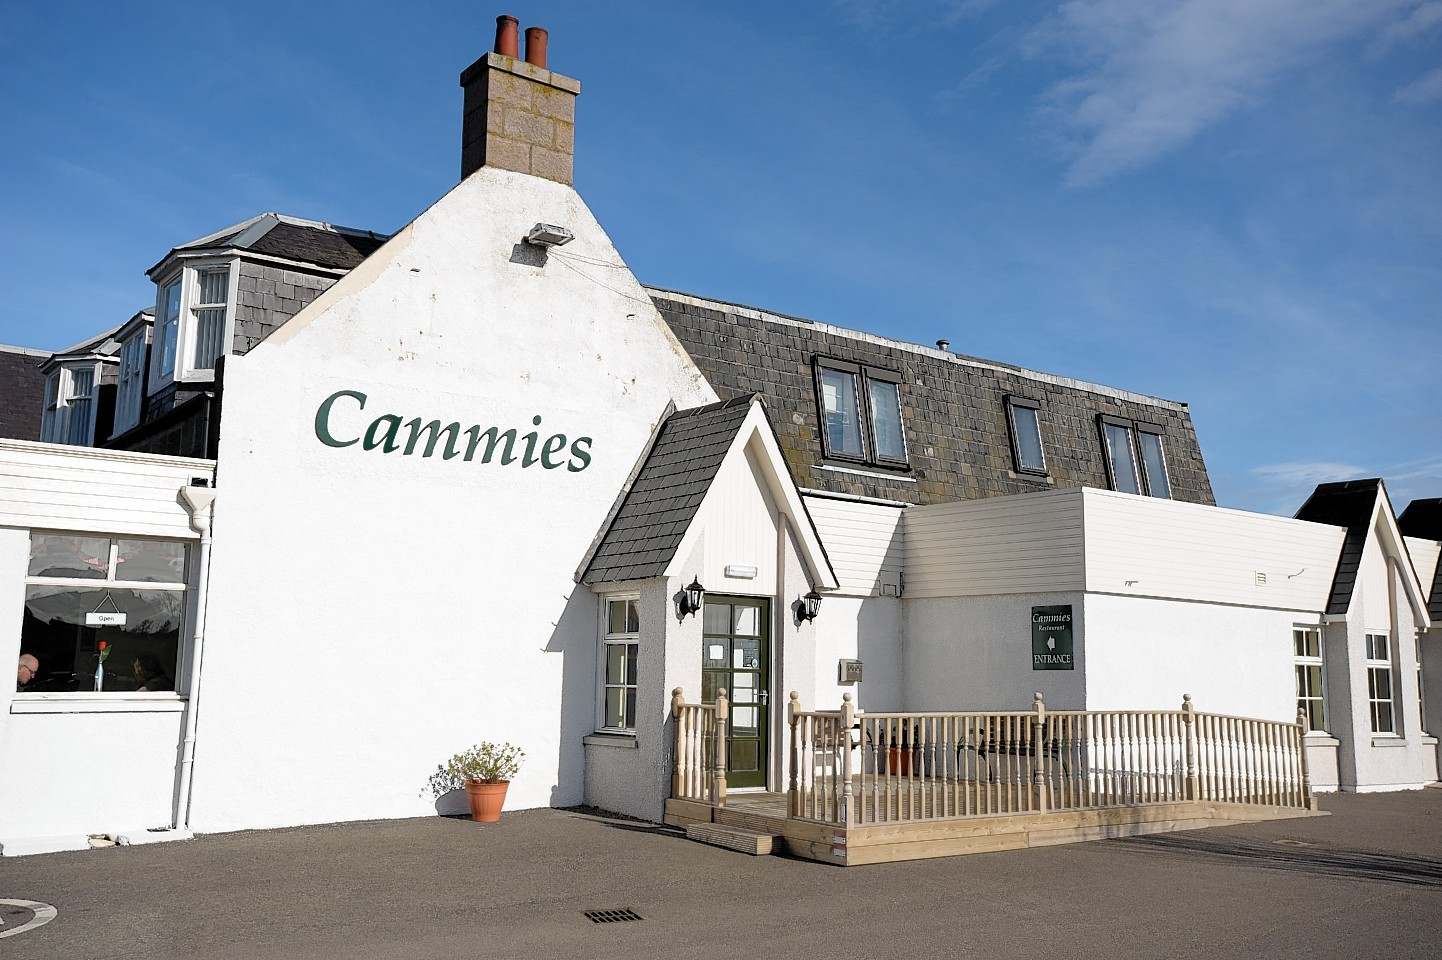 Cammies Restaurant, near Newtonhill